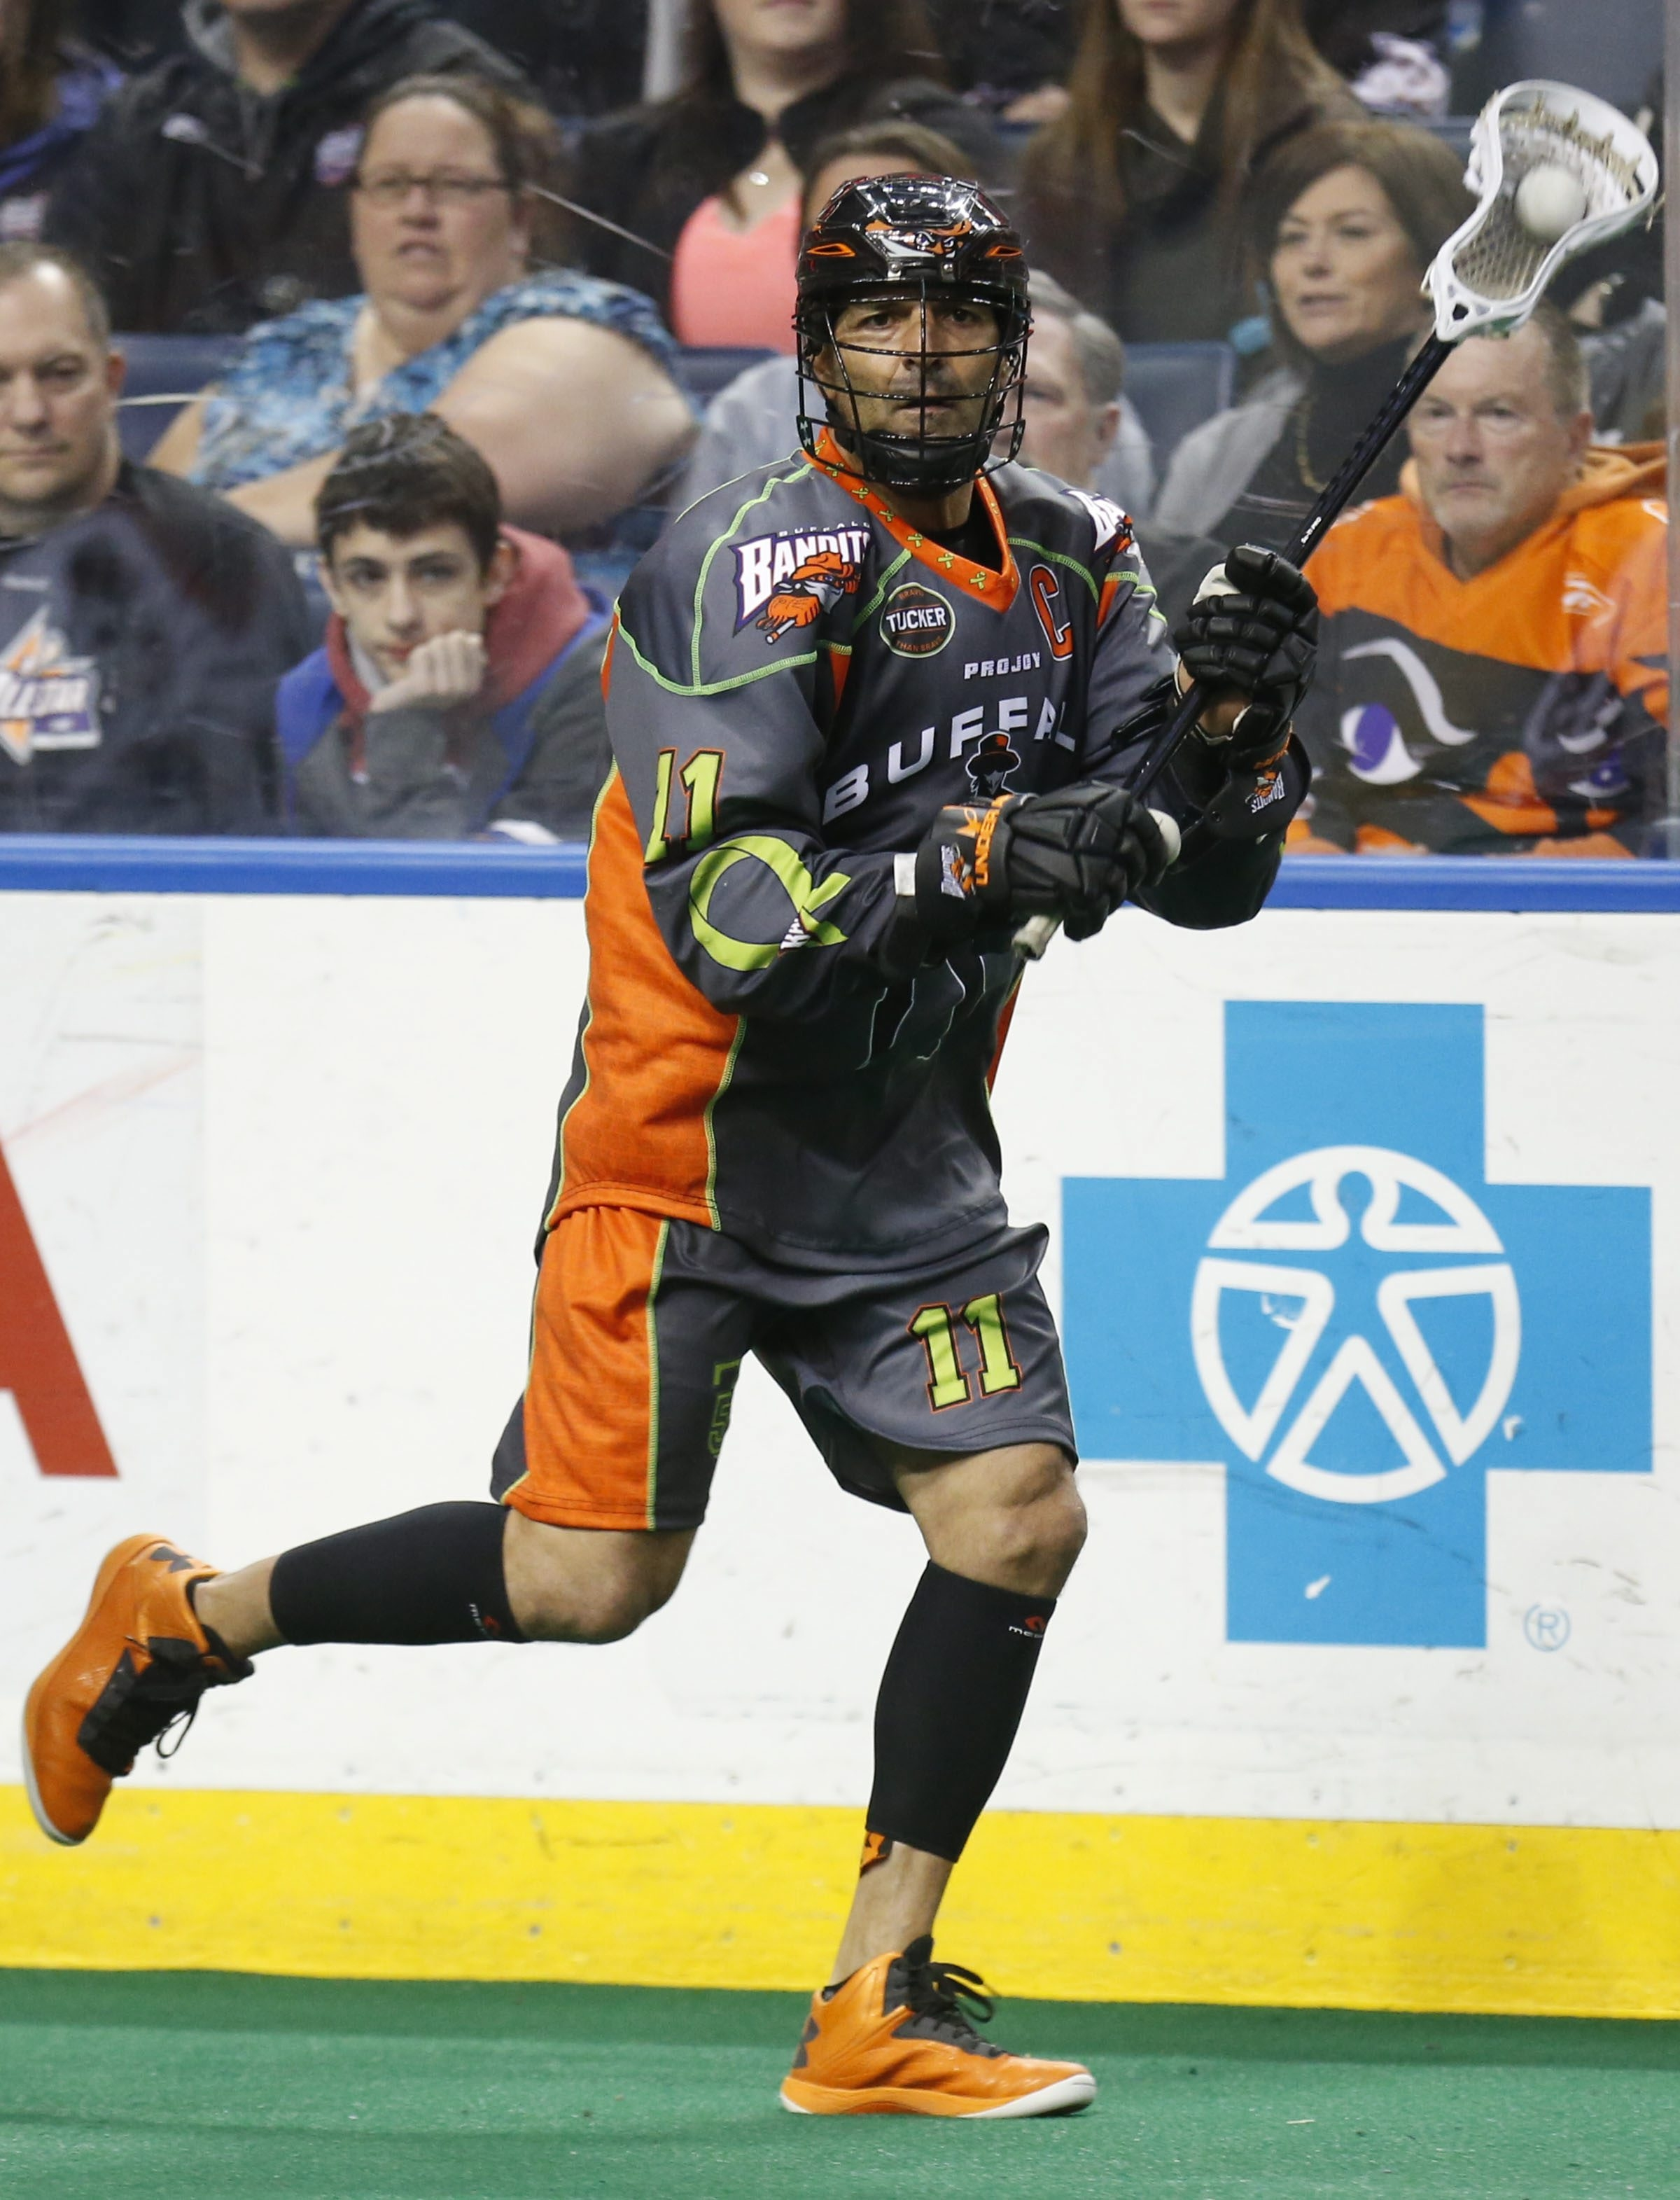 At age 46, Bandits legend John Tavares knows the clock is ticking on his career.